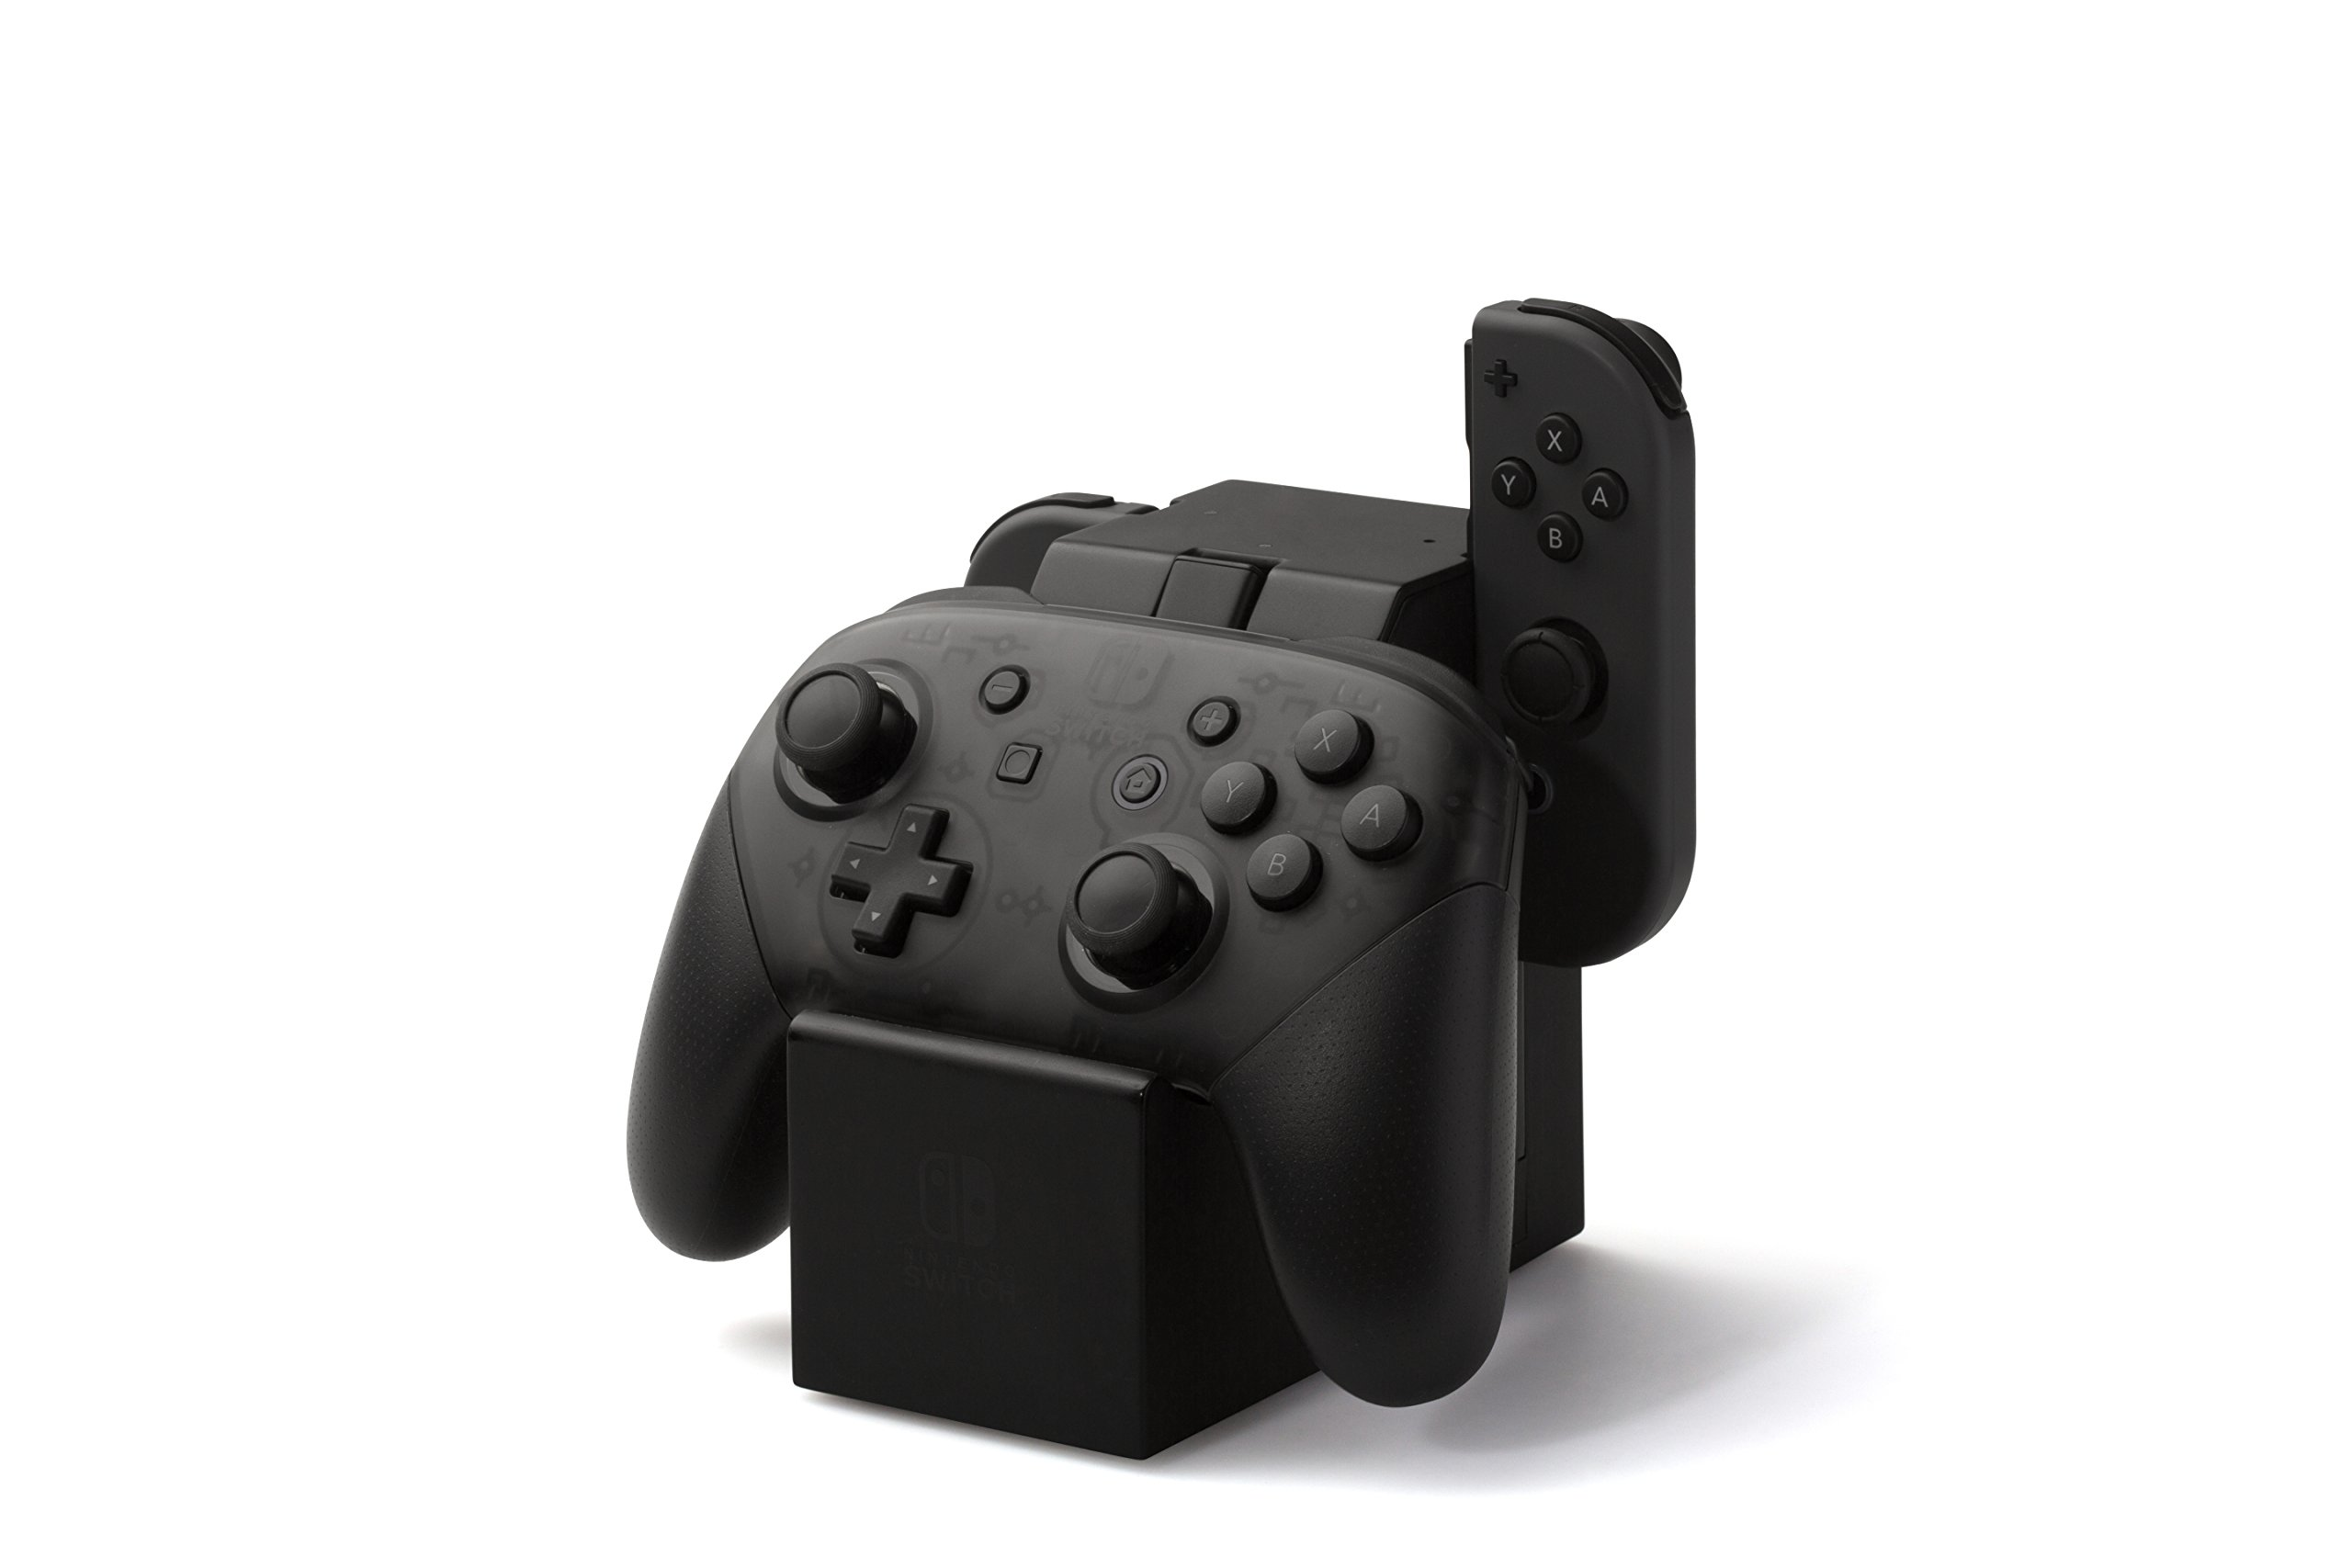 Amazon.com: Nintendo Switch Pro Controller: Video Games